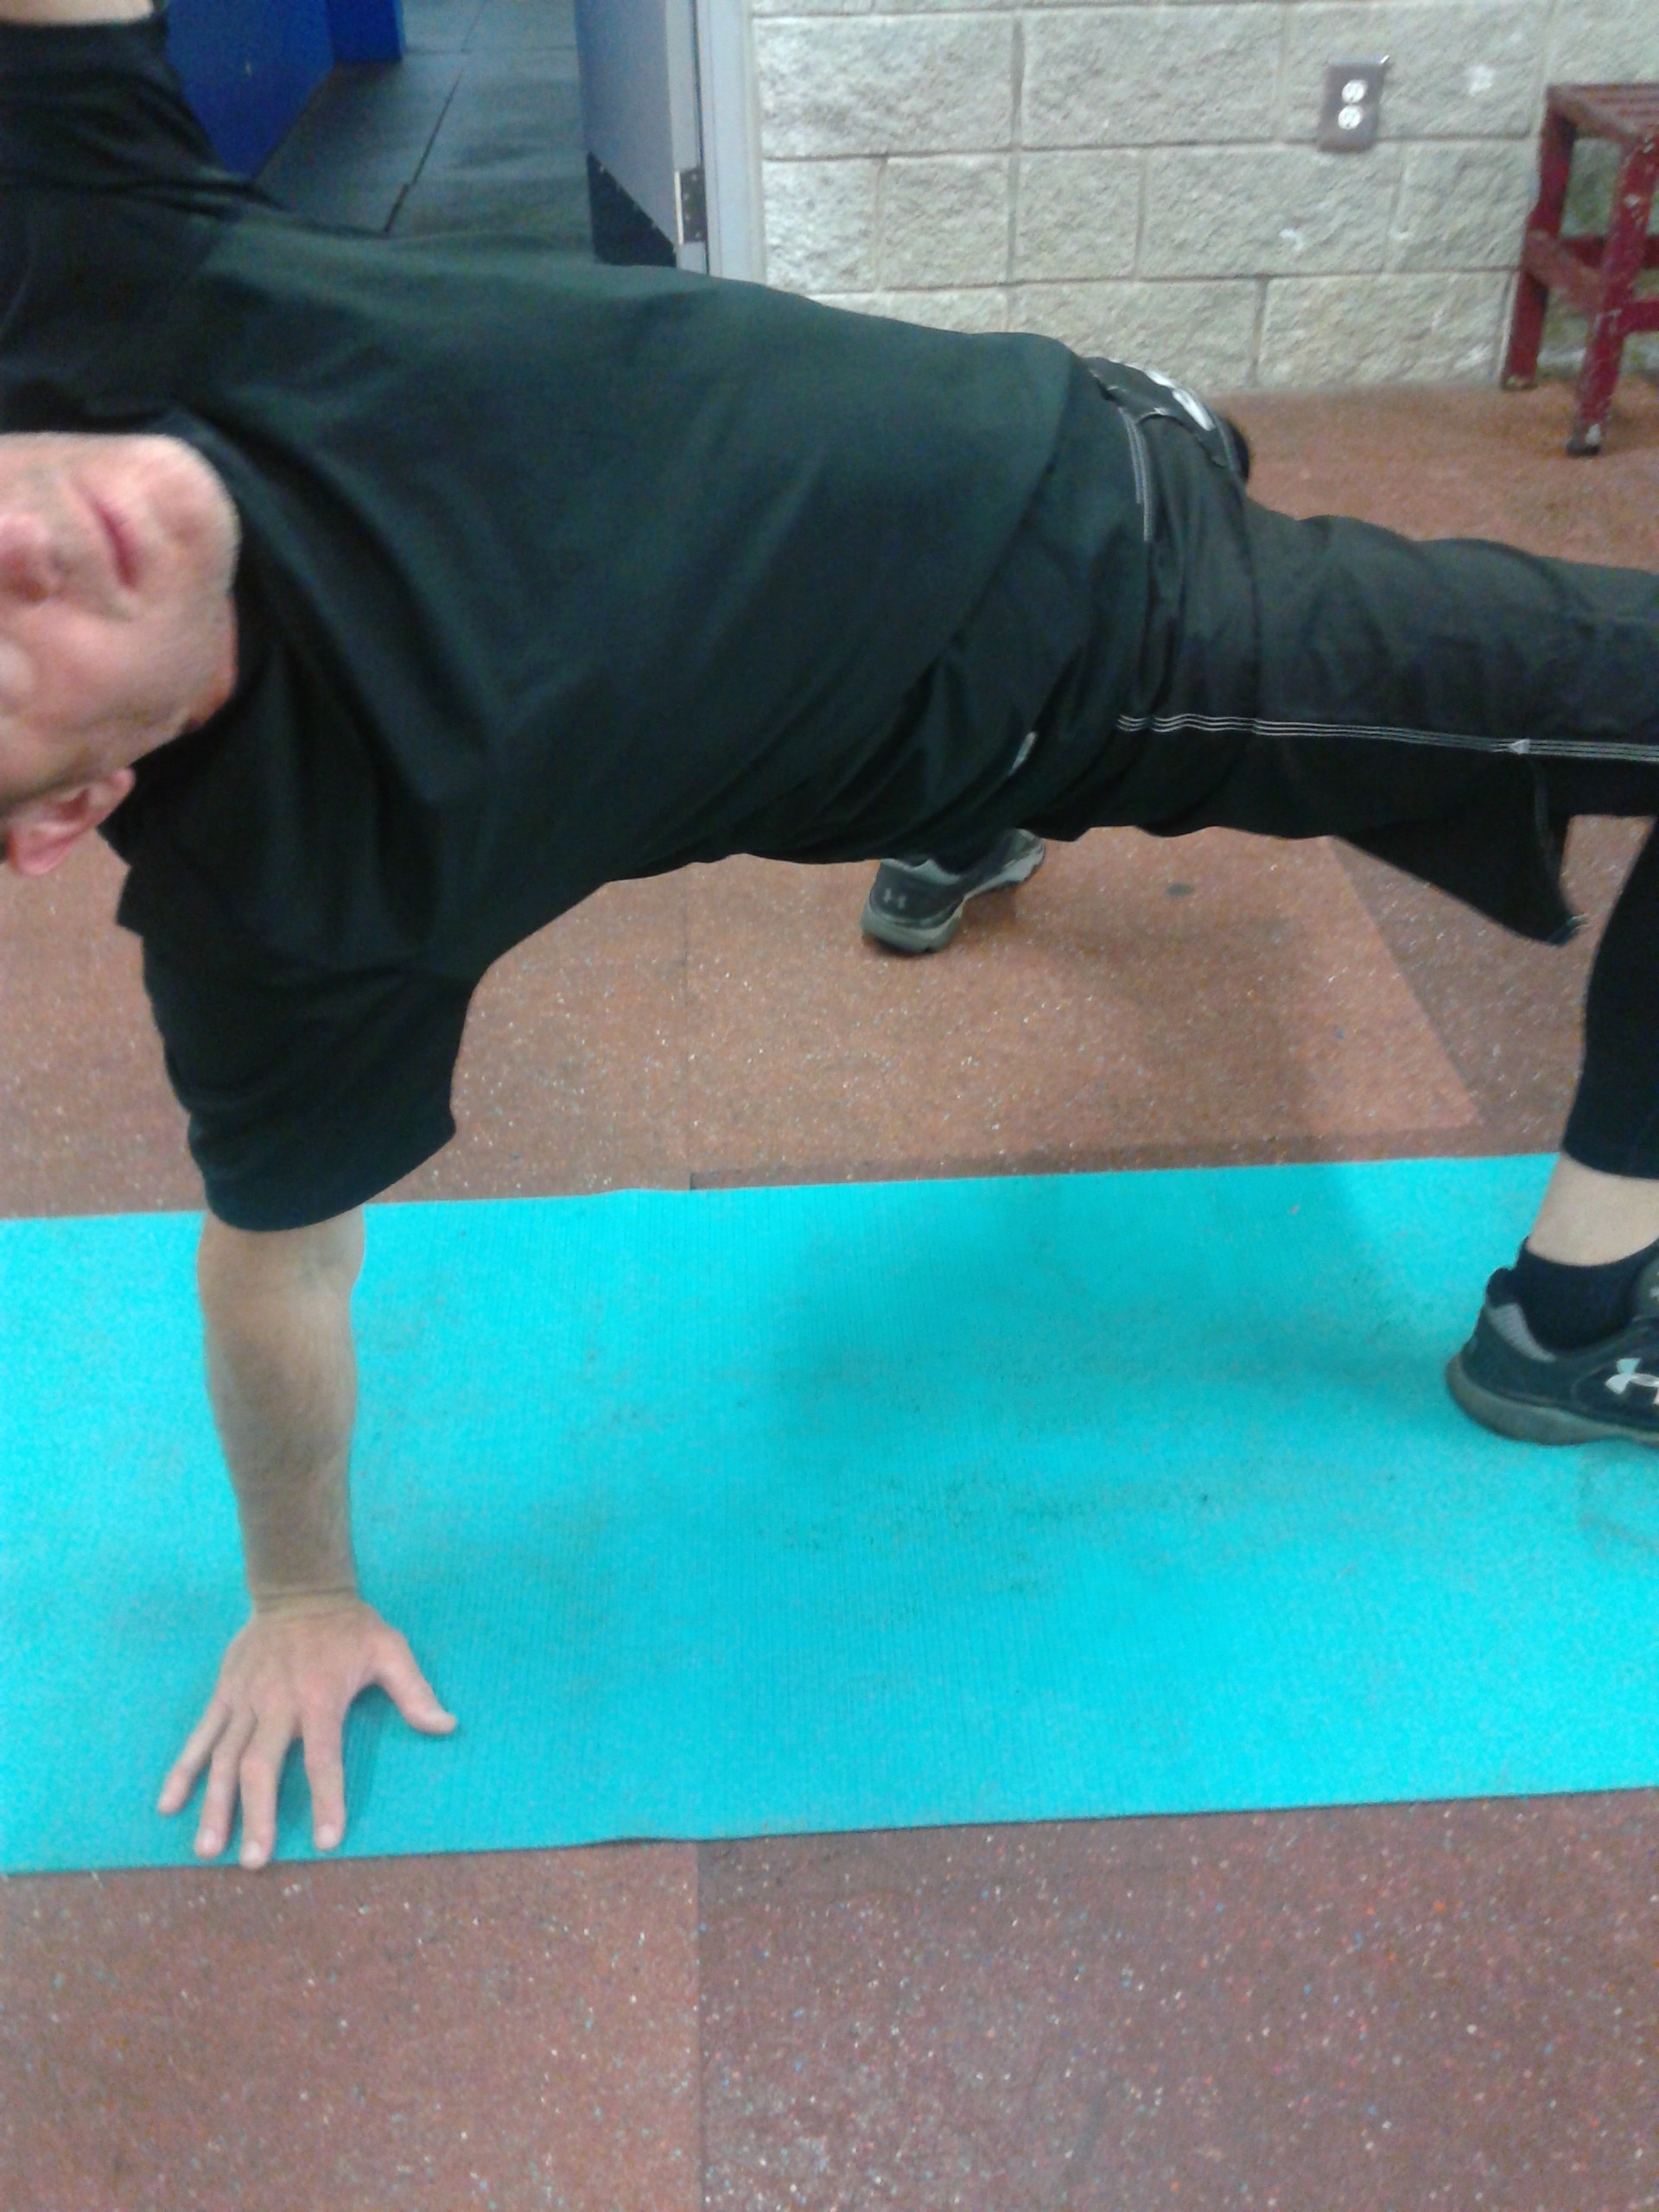 Proprioception: Developing Your Sixth Sense And Enhancing Your Physical Intelligence